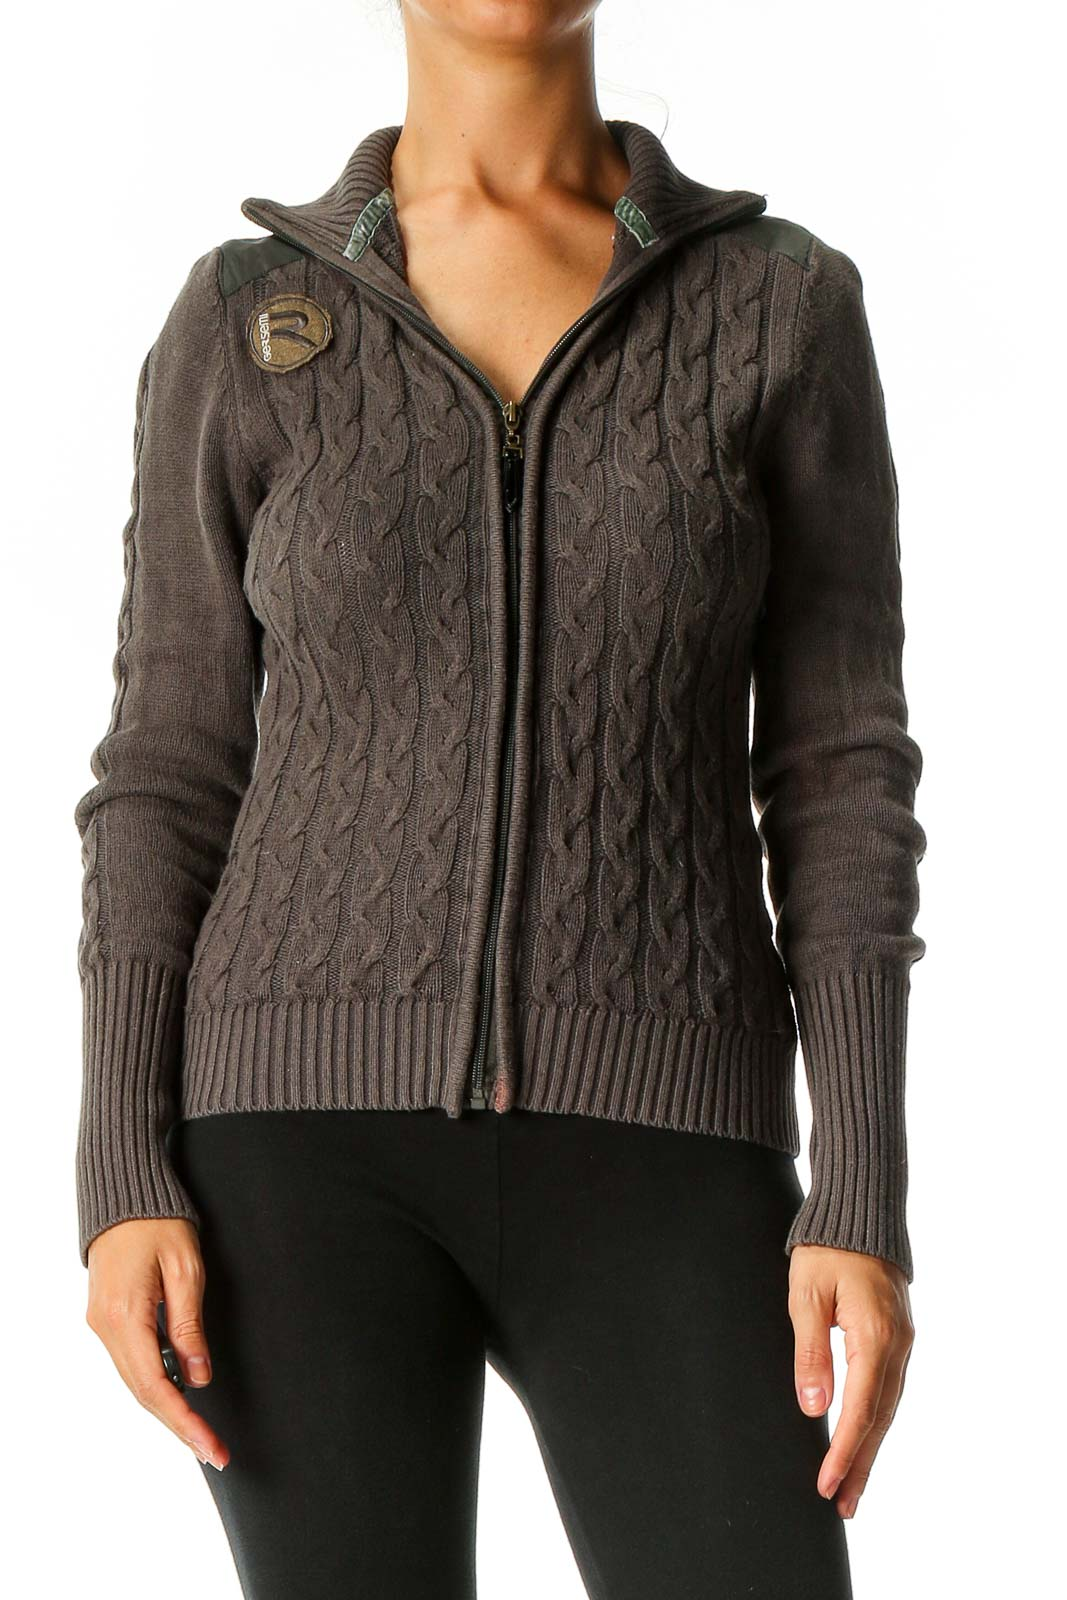 Brown Solid Retro Sweater Front